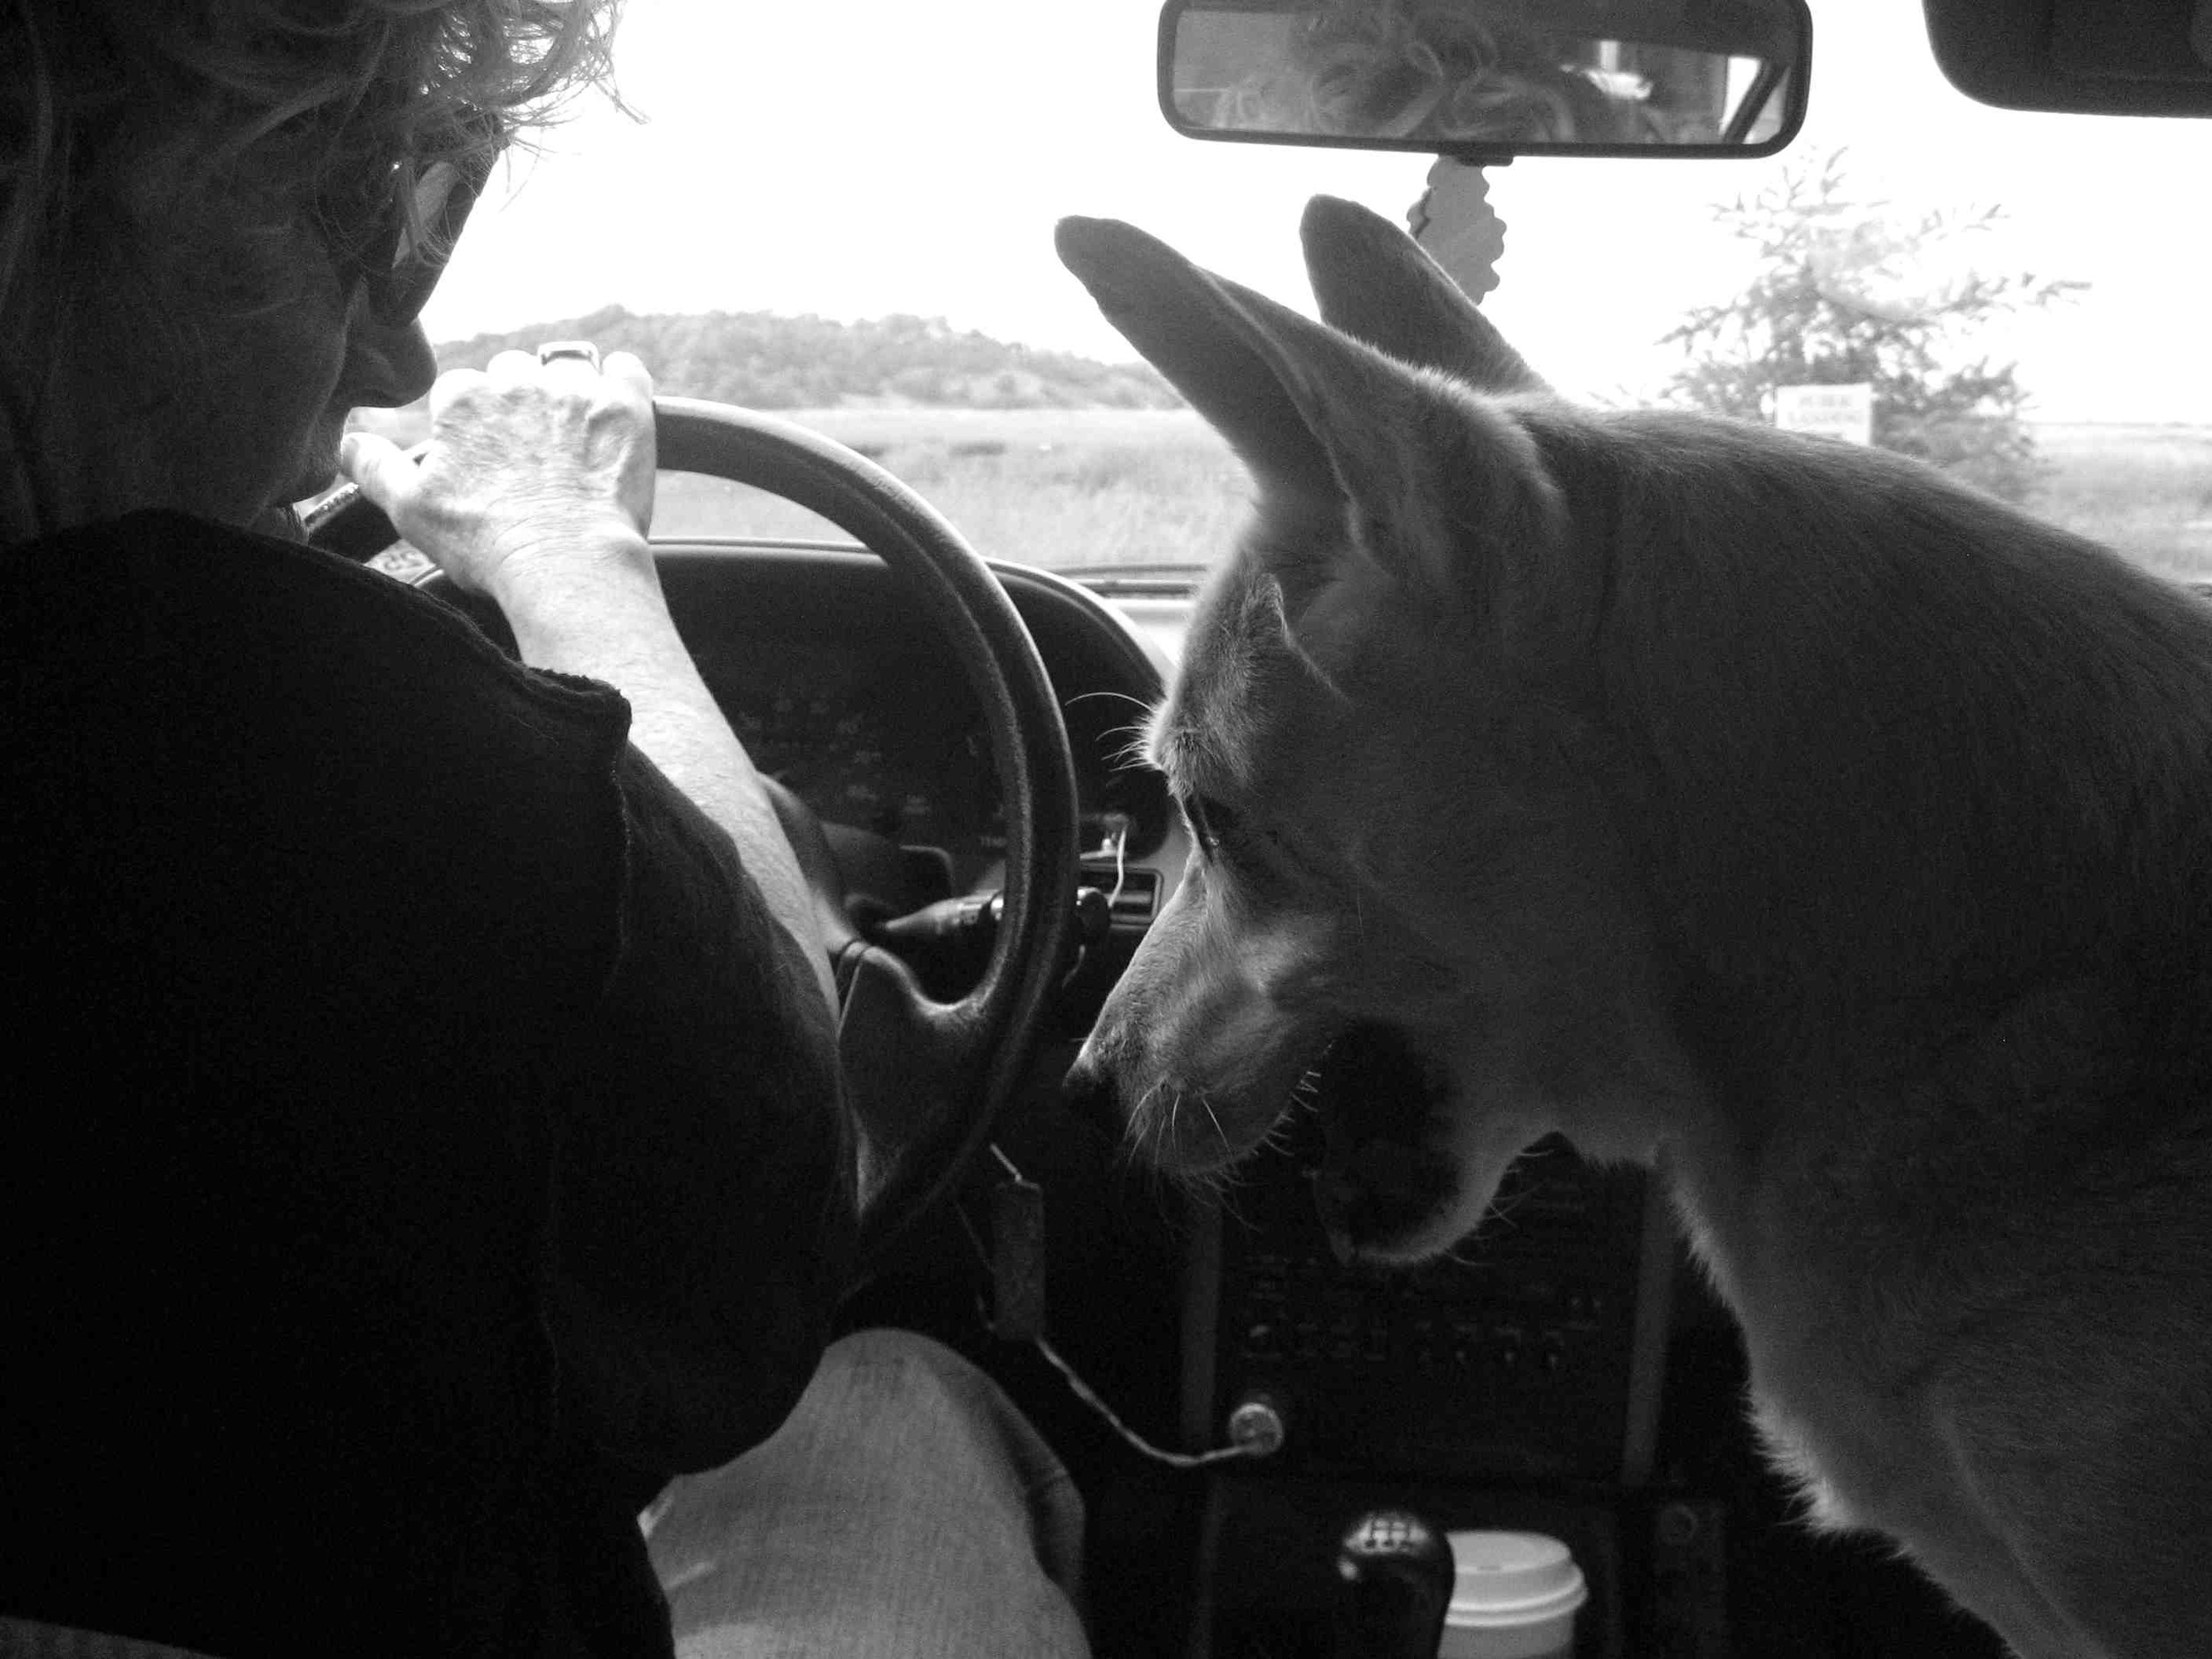 Driving around Provincetown with Sharon & Peg, 2006